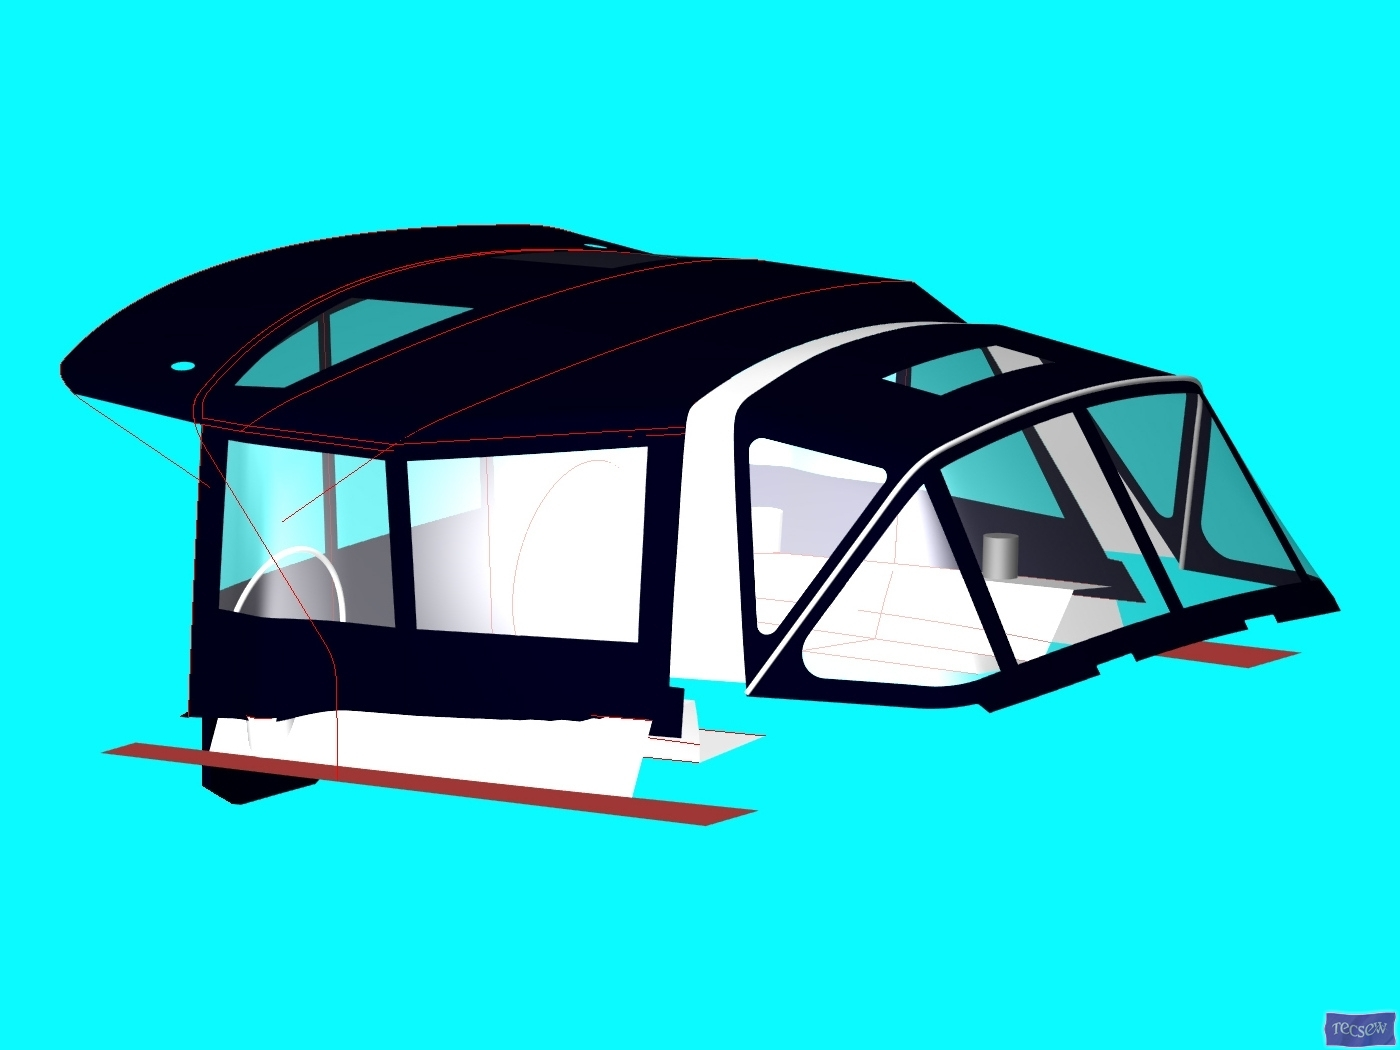 Beneteau Oceanis 45 Bimini Conversion requires seperate Bimini_4